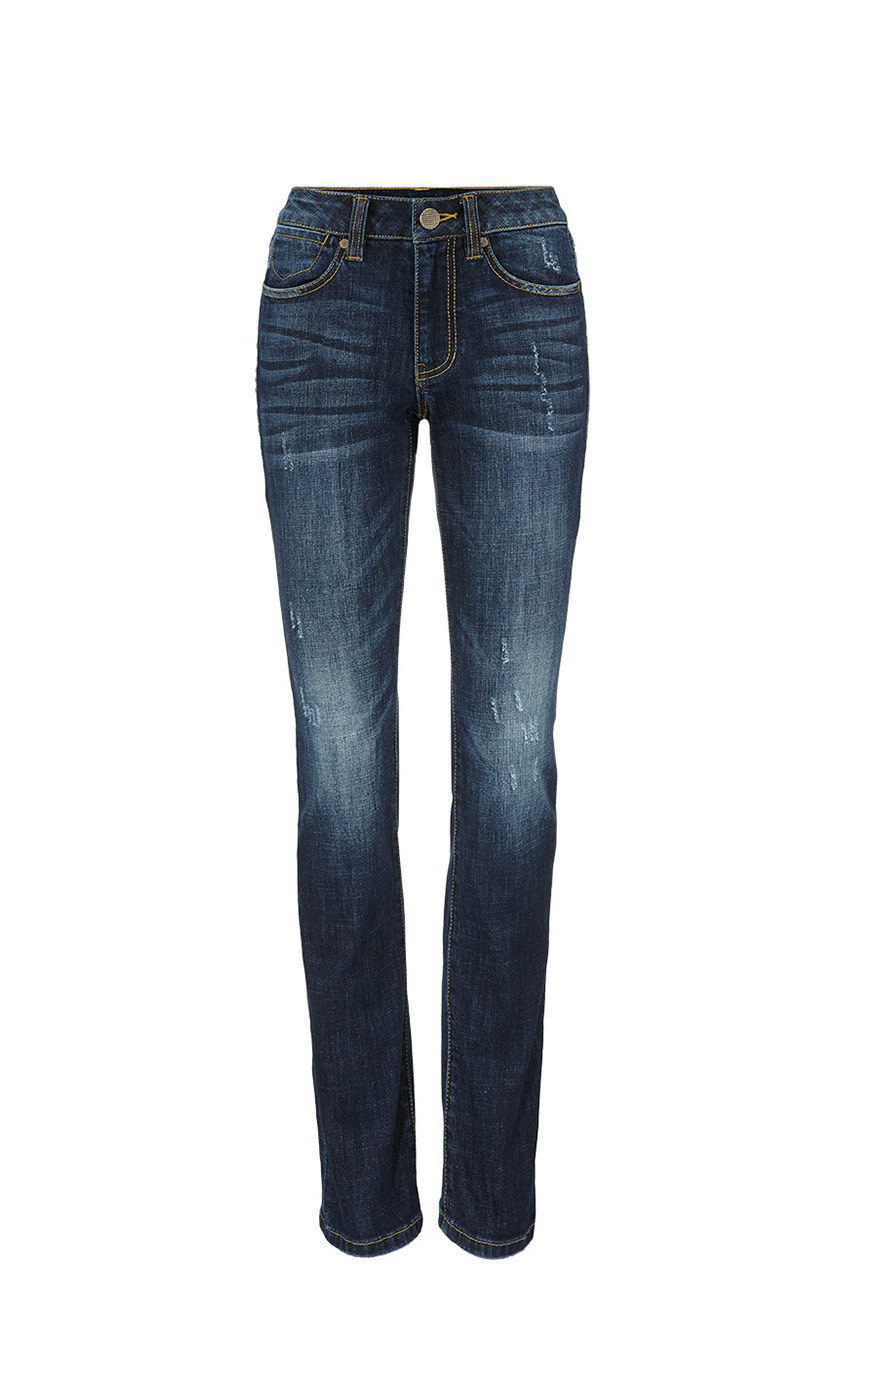 cabi's Authentic High Straight